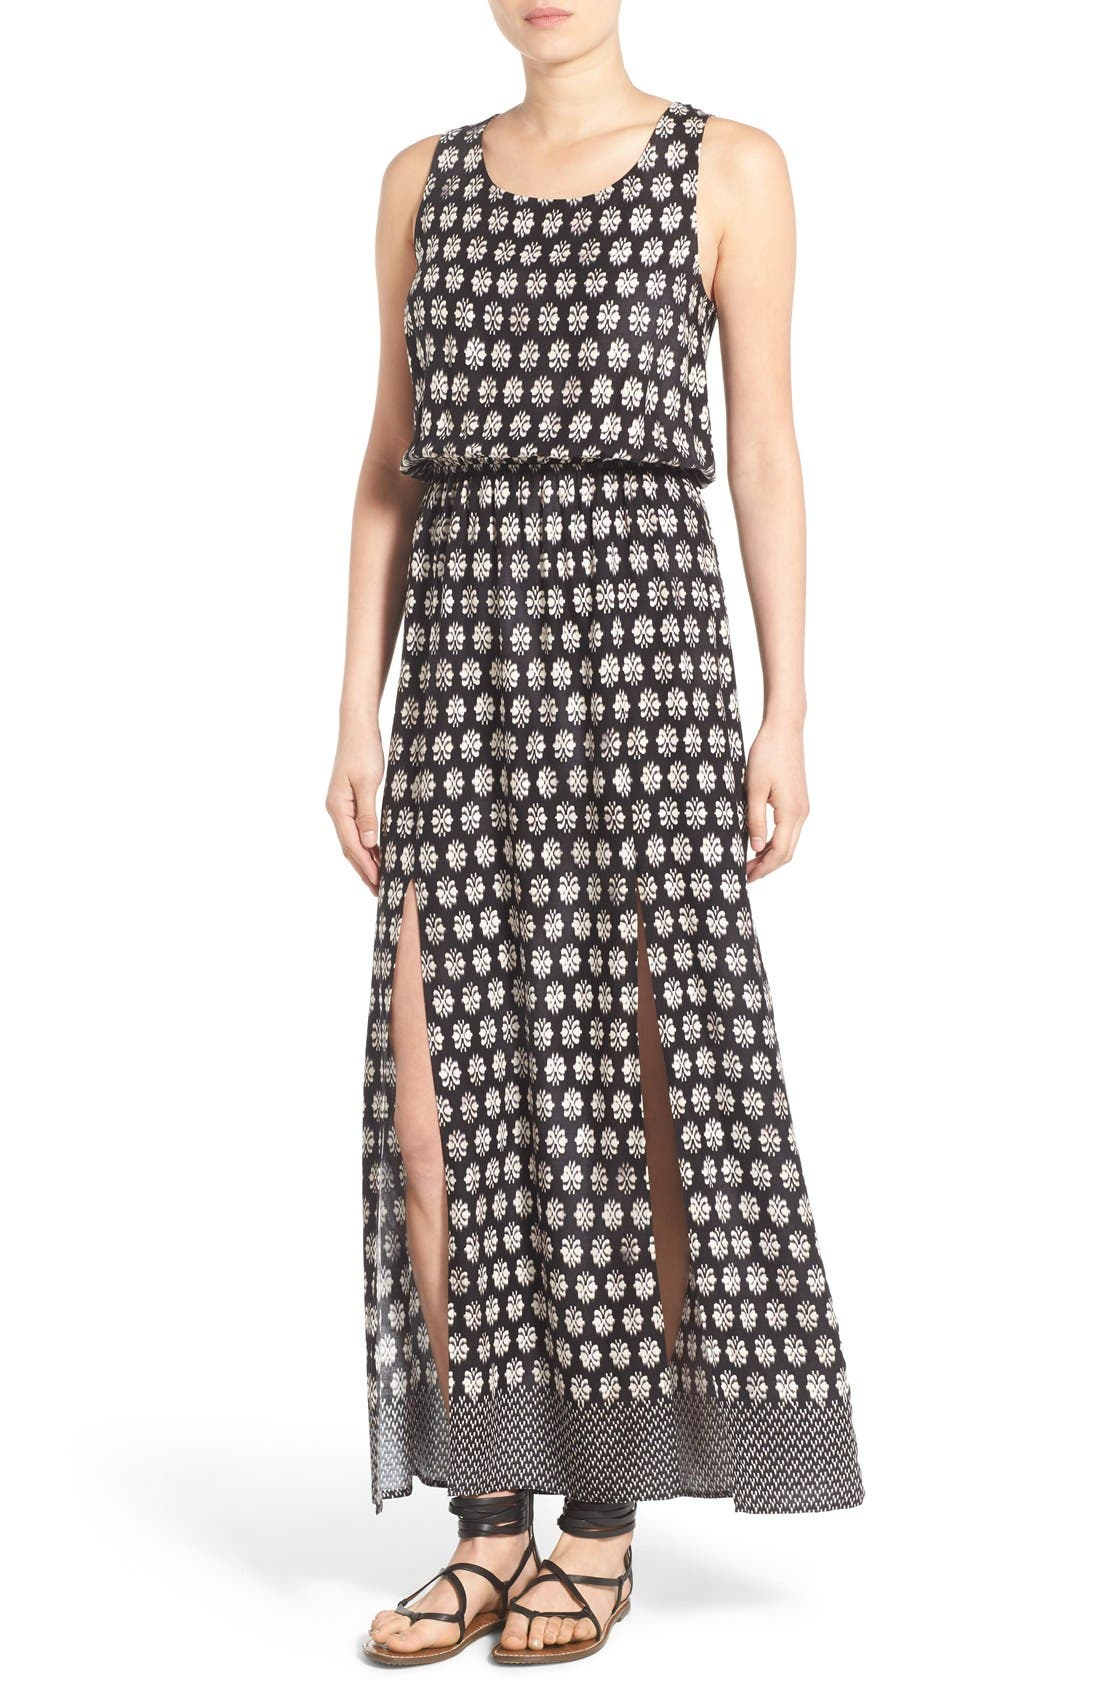 Alternate Image 1 Selected - Mimi Chica Print Lace Up Maxi Dress